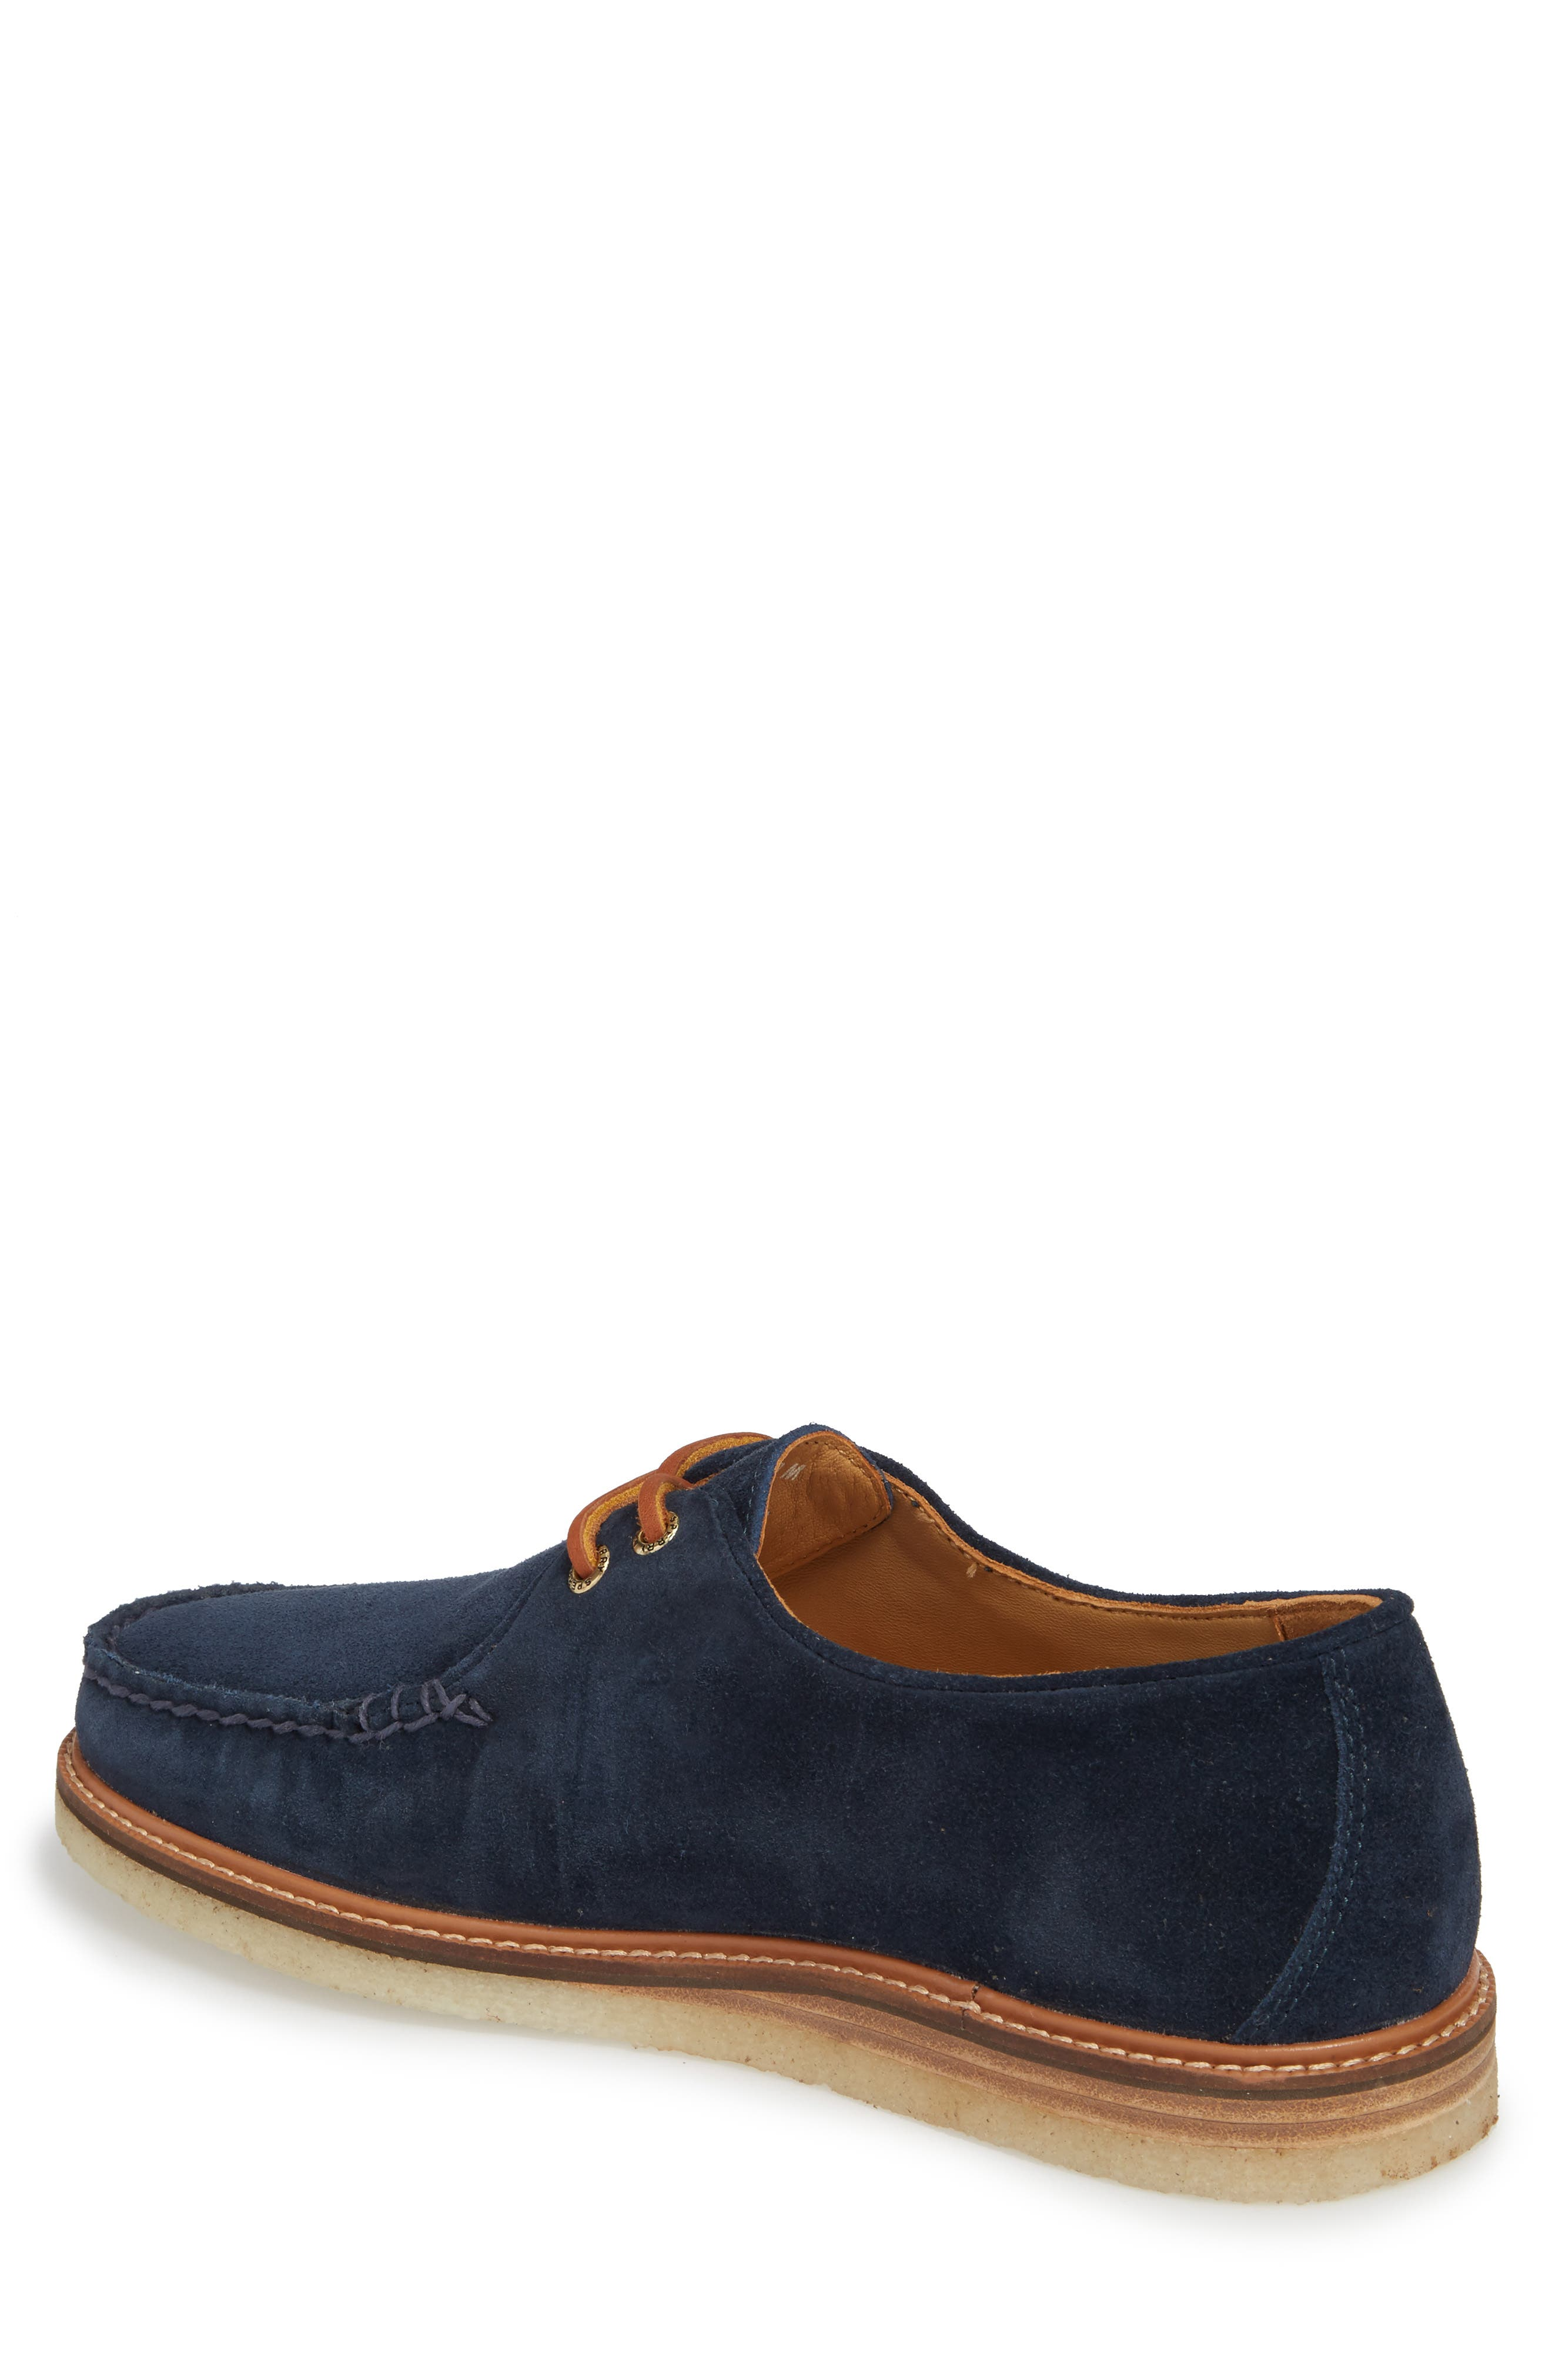 SPERRY, Gold Cup Captain's Crepe Sole Oxford, Alternate thumbnail 2, color, BLUE LEATHER/ SUEDE